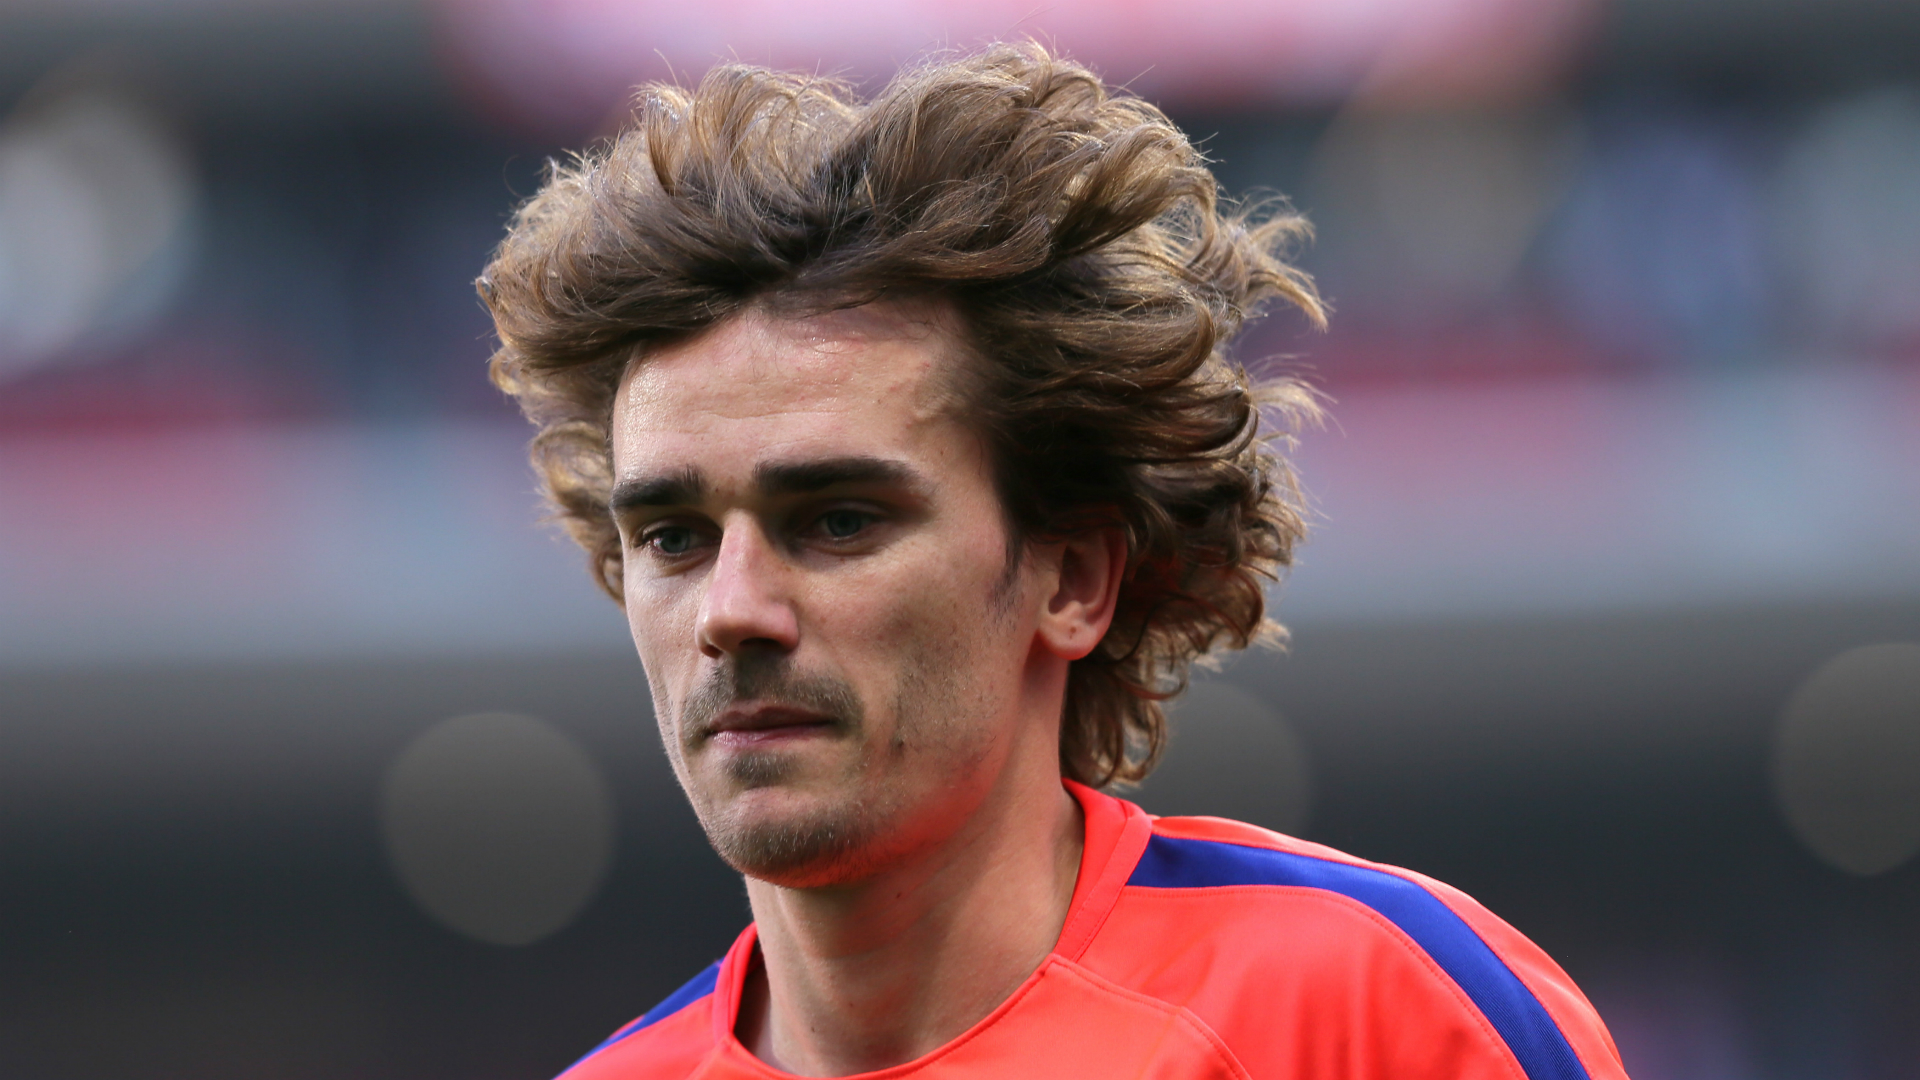 Valverde unsure whether Barcelona will swoop for 'great player' Griezmann